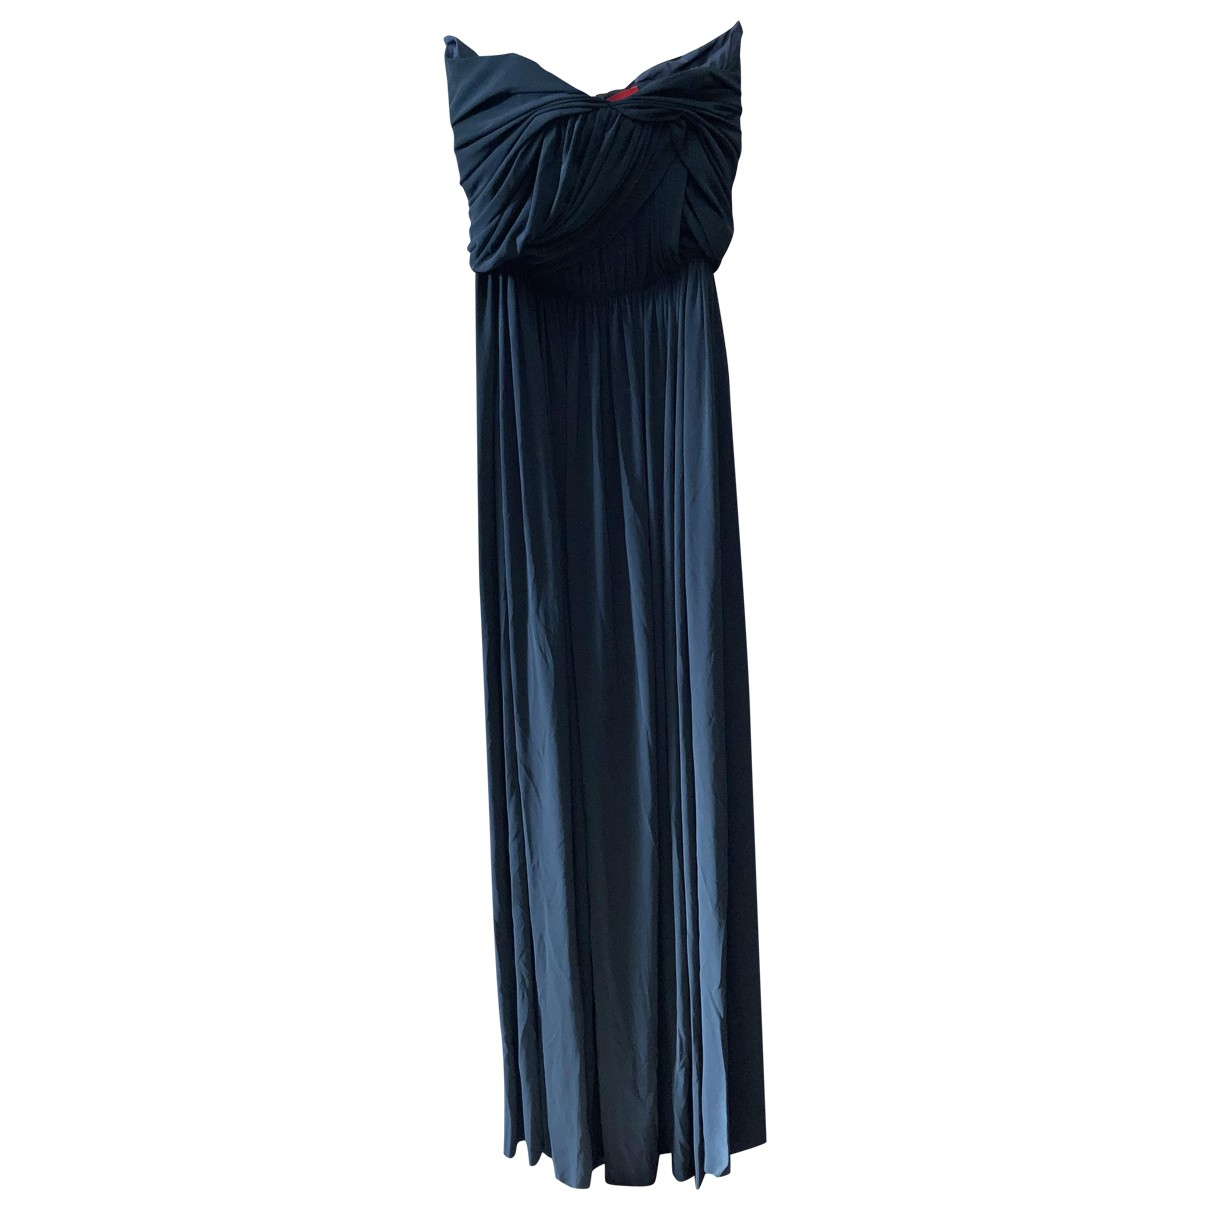 Lanvin \N Kleid in  Blau Synthetik